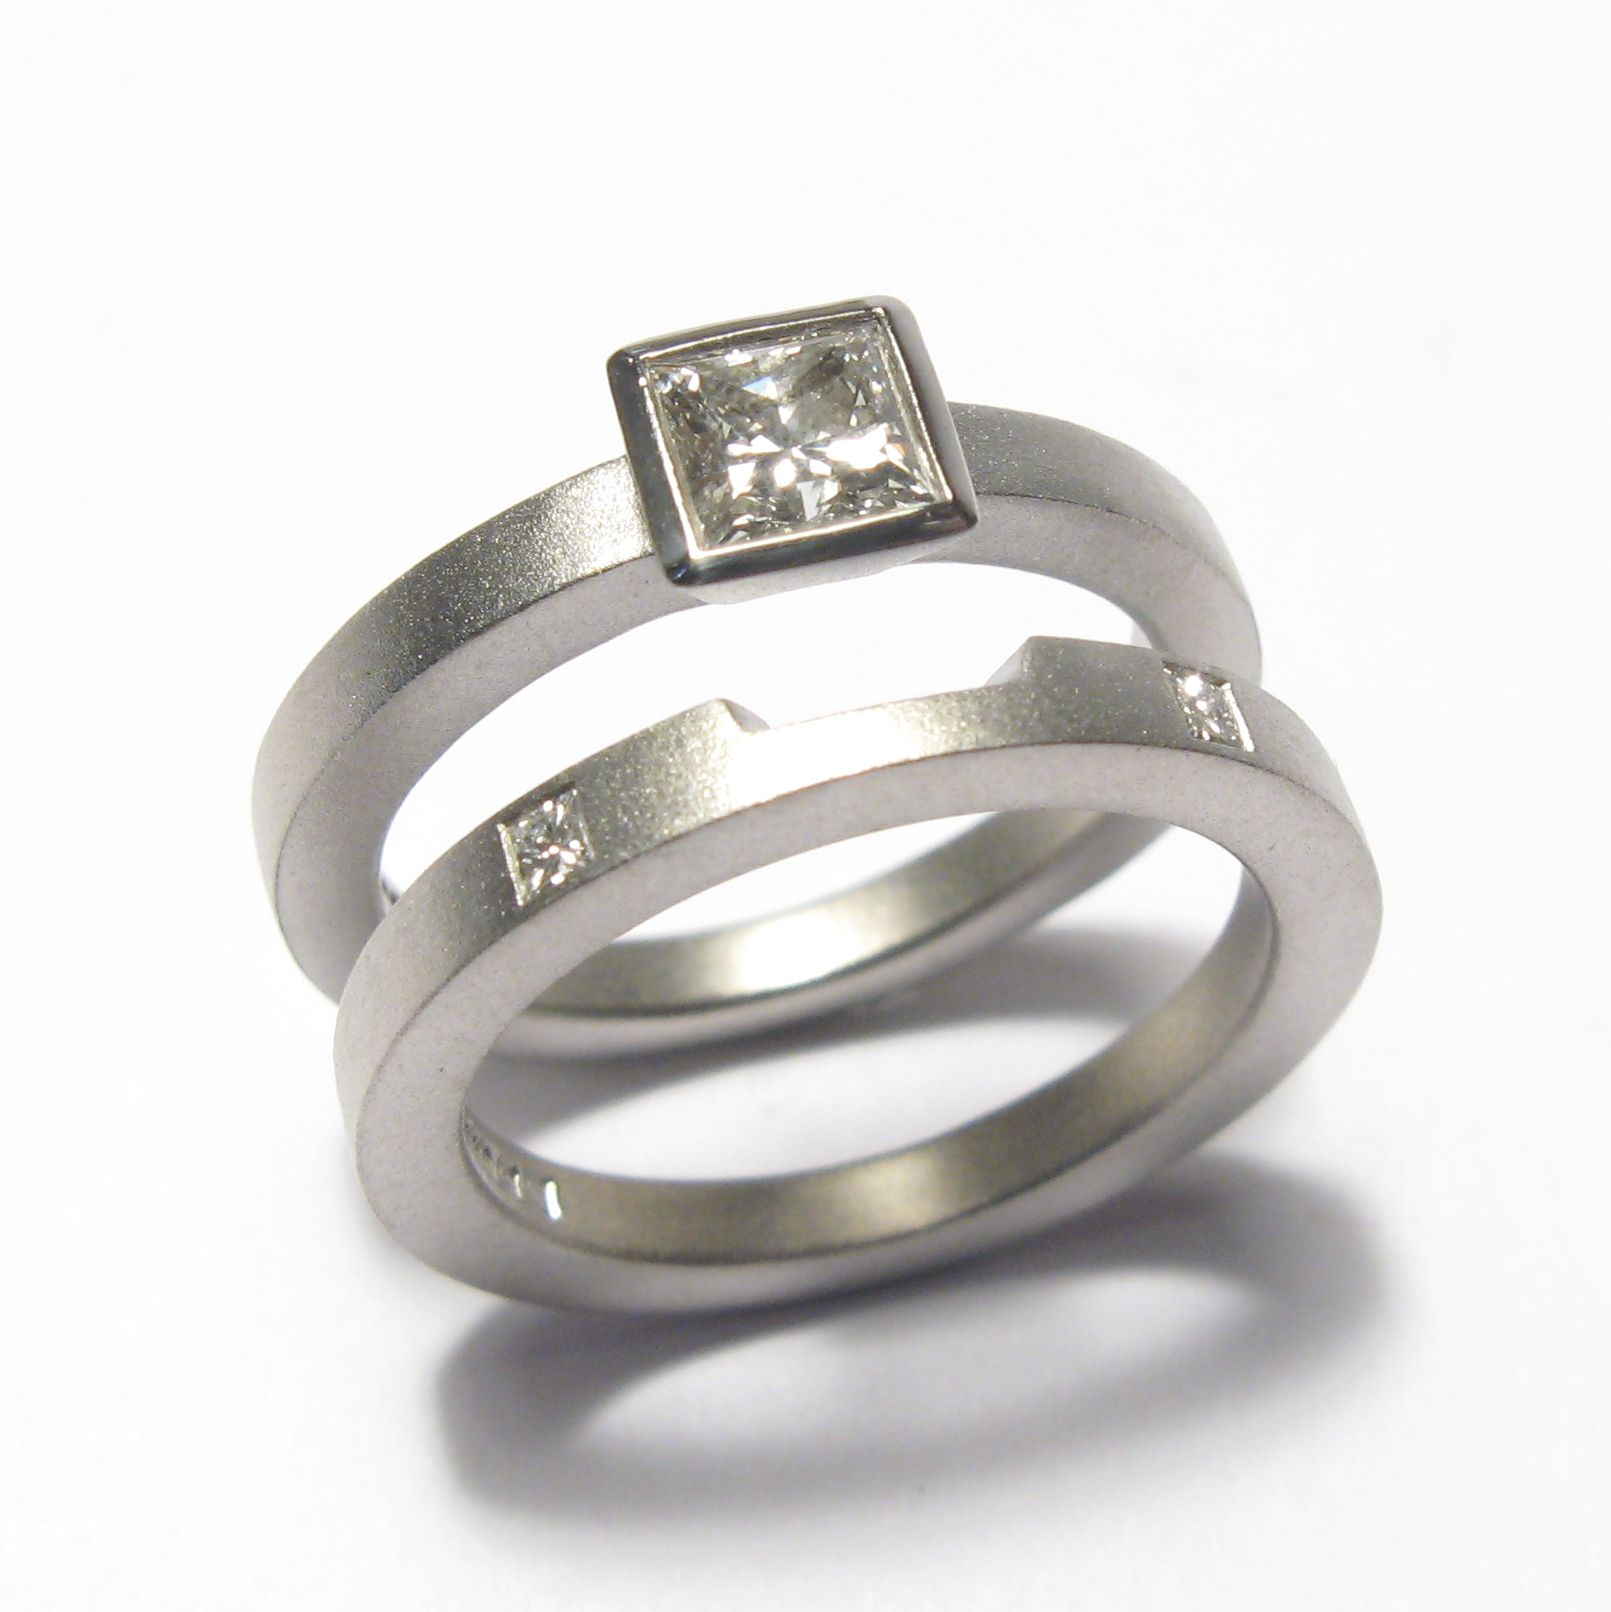 contemporary wedding rings wedding and engagement rings bespoke jewellery fitted wedding rings - Contemporary Wedding Rings